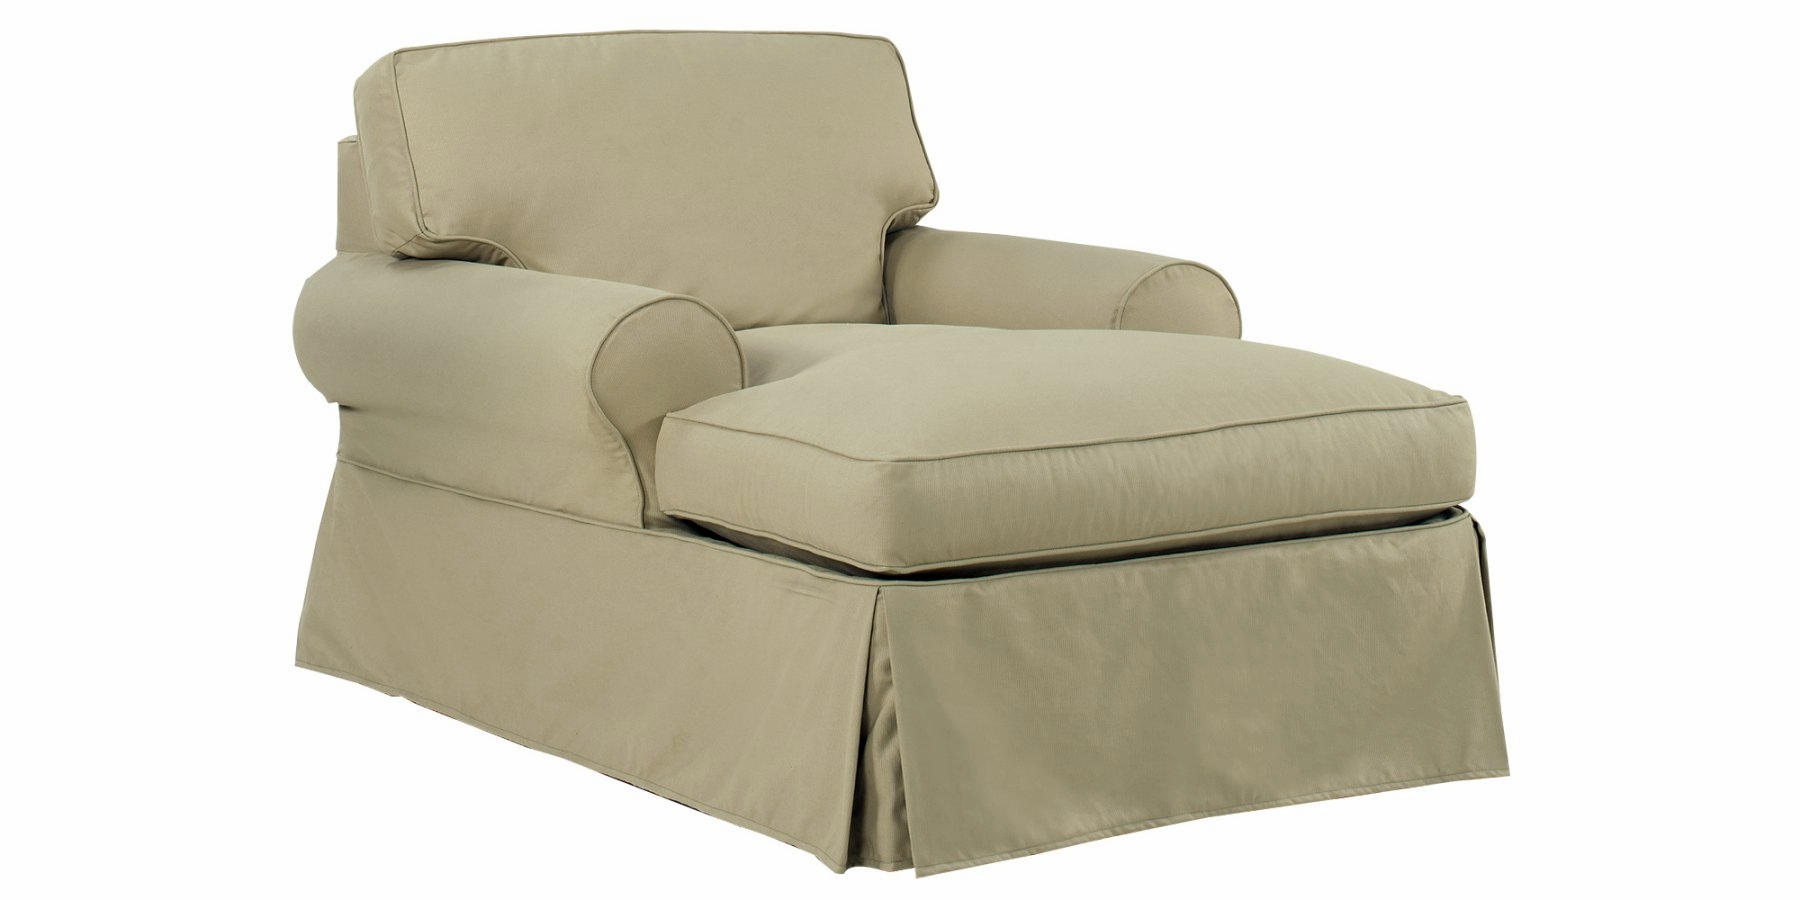 Living Room Lounge Chair Sofa slipcovered chaise lounge chair club furniture sofas furniture